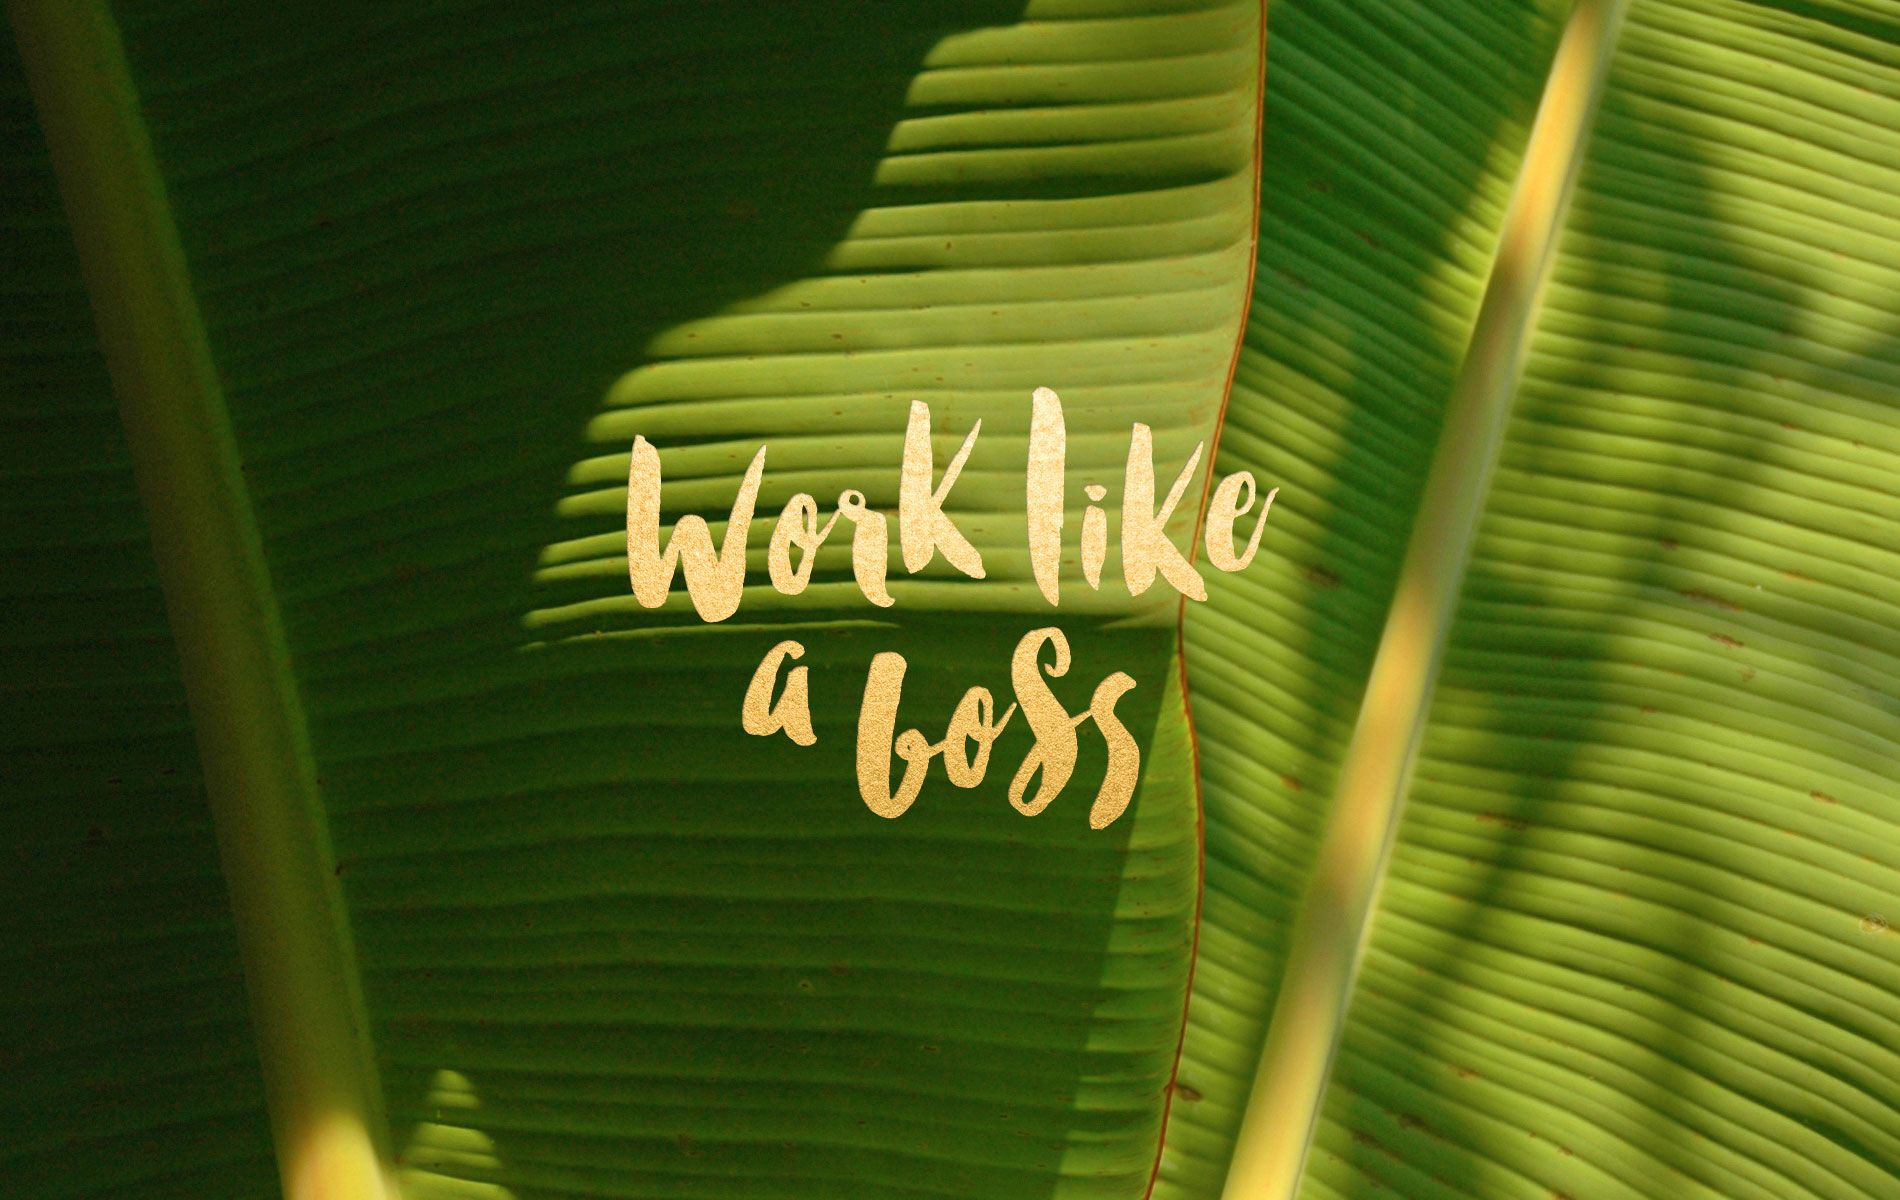 Work Like A Boss Free Desktop Wallpaper By Leysa Flores